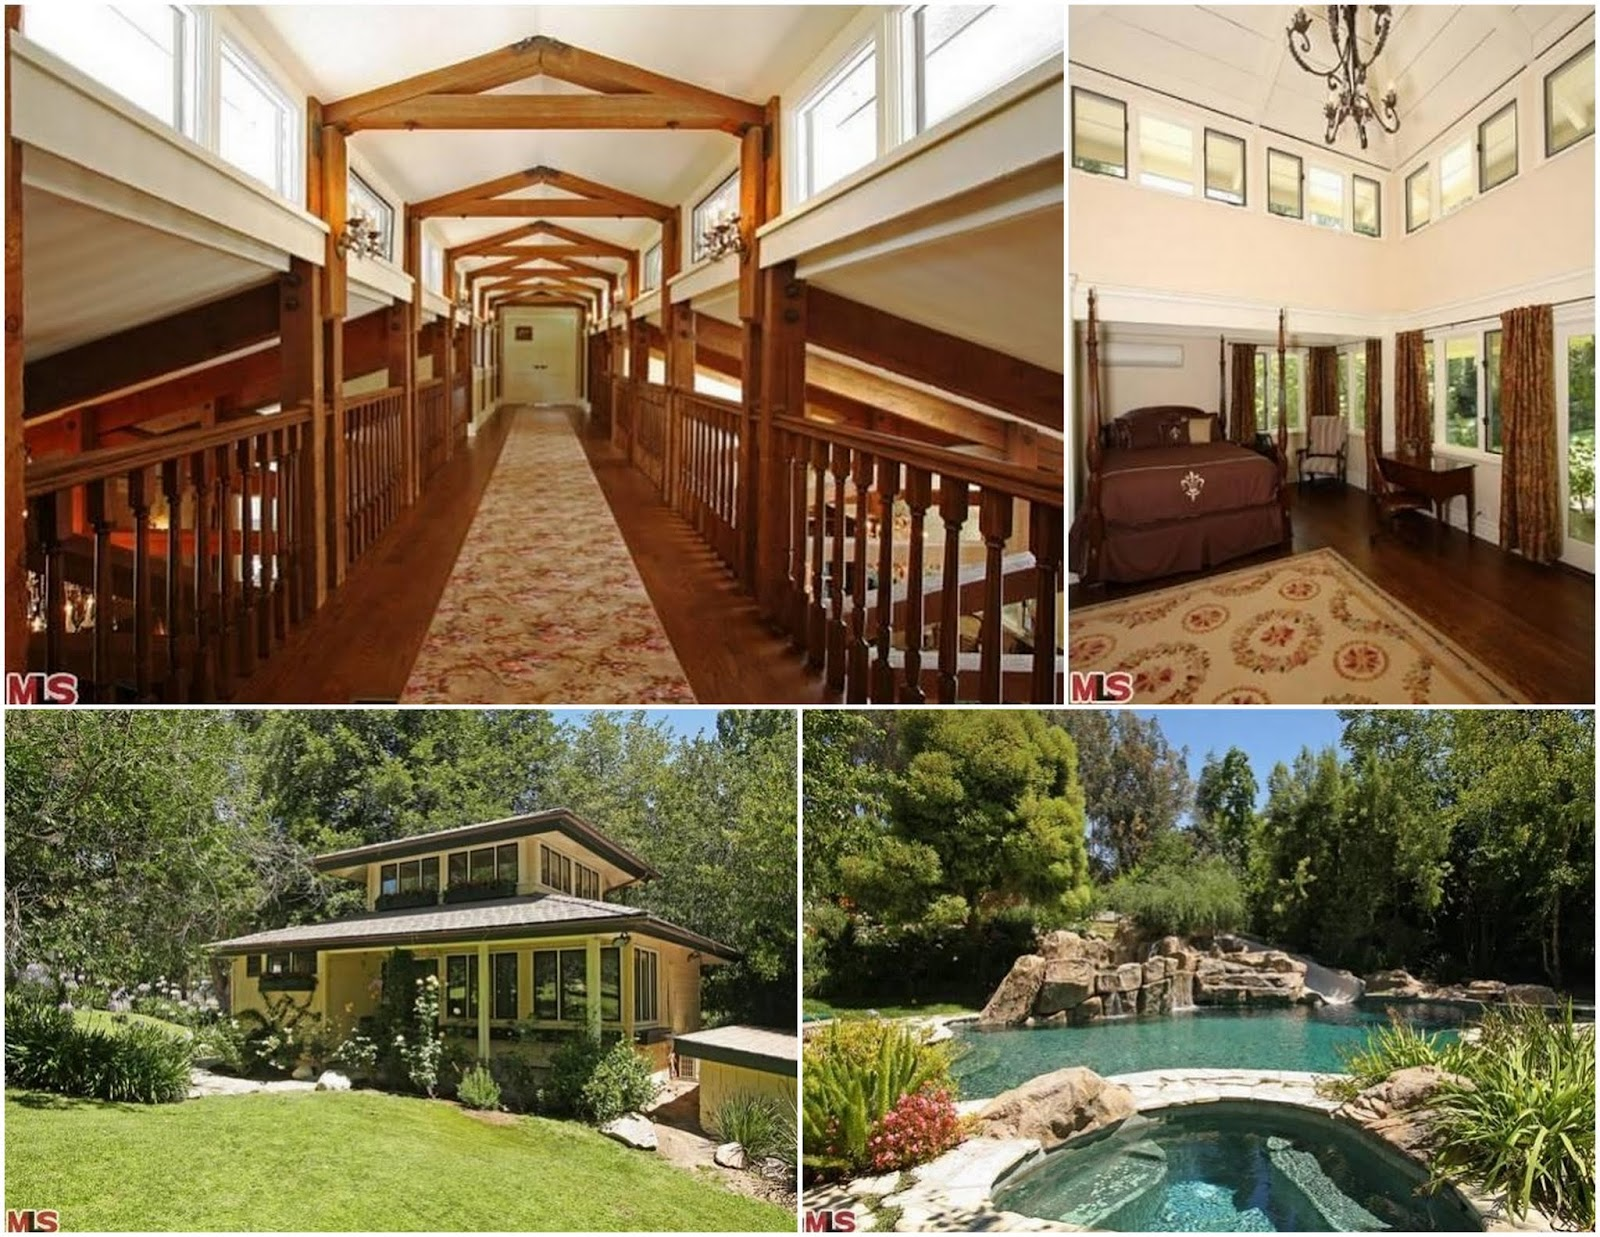 celebrity real estate former lisa marie presley estate in hidden hills flipped at 22 million. Black Bedroom Furniture Sets. Home Design Ideas